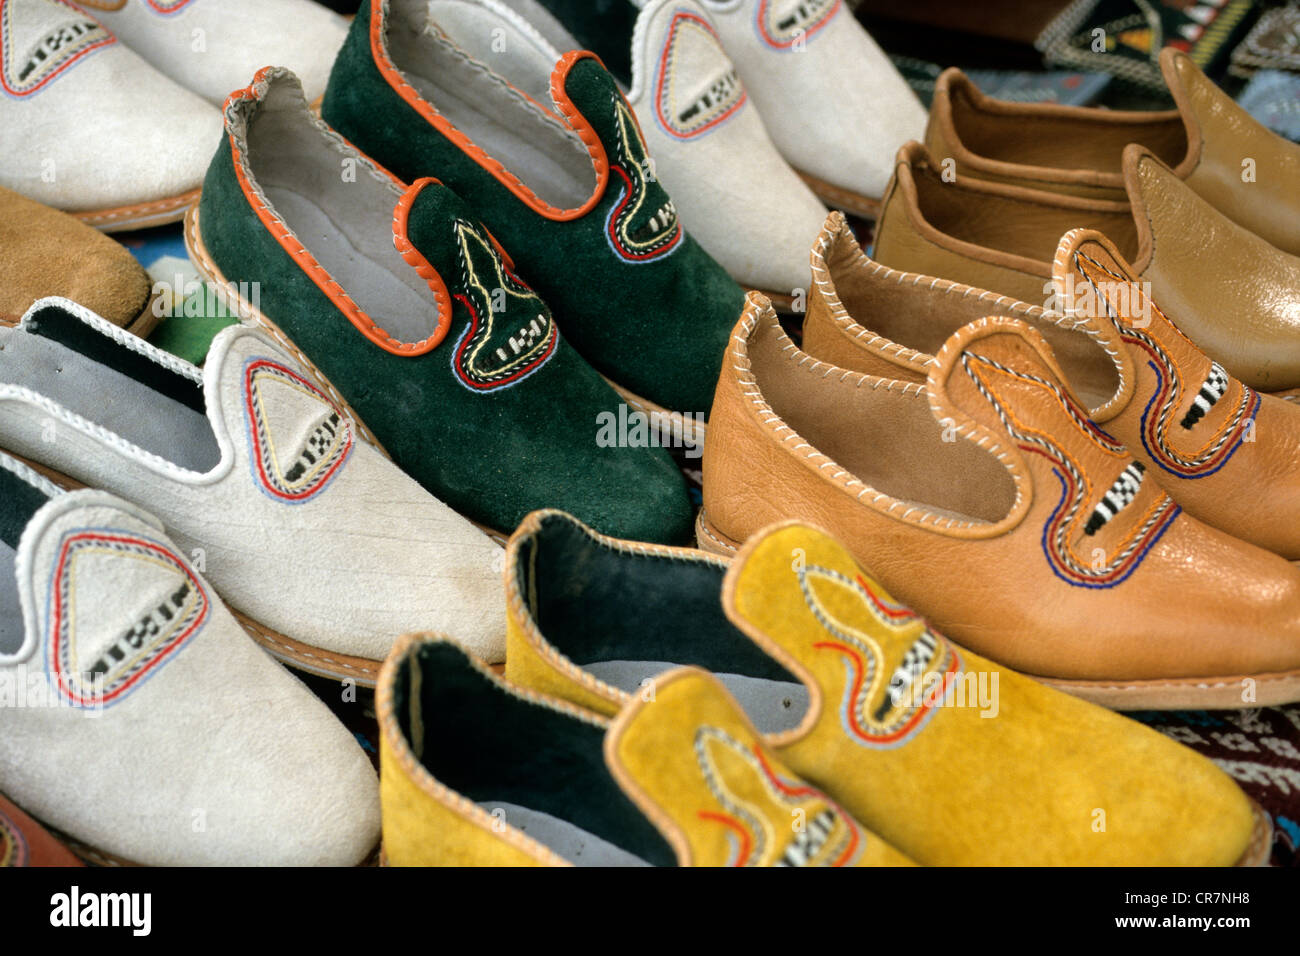 Tunisia, Southern region, Douz, crafts, shoes and leather slippers - Stock Image